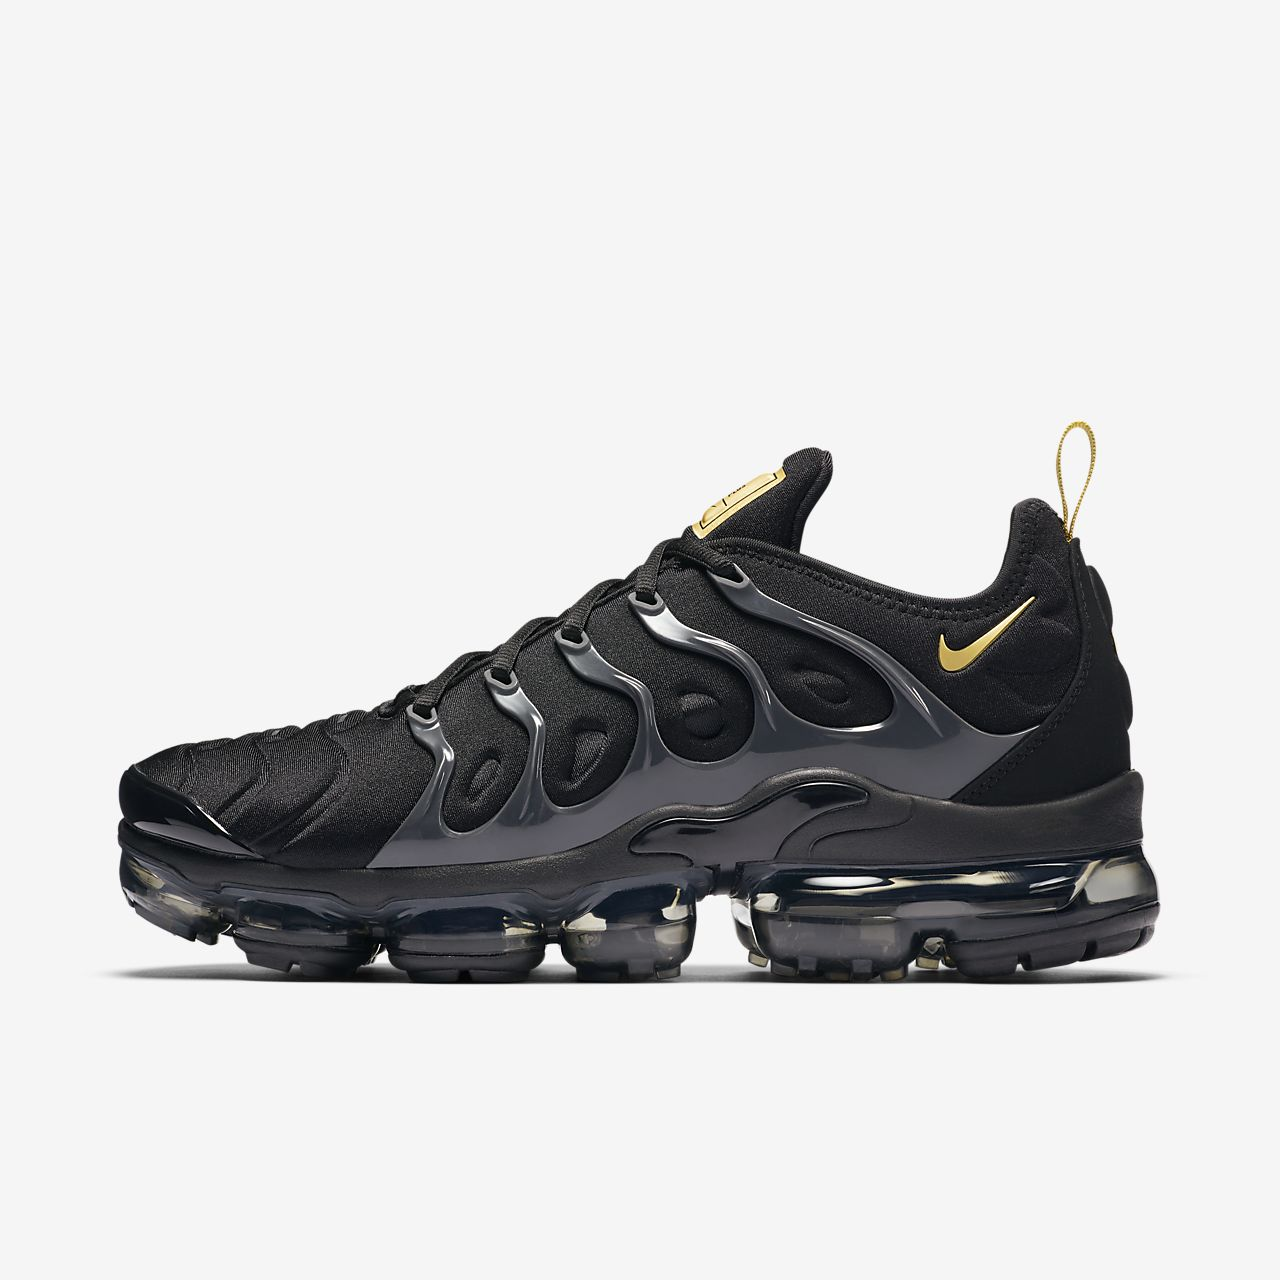 sneakers for cheap 194e2 ee6a2 ... Chaussure Nike Air VaporMax Plus pour Homme